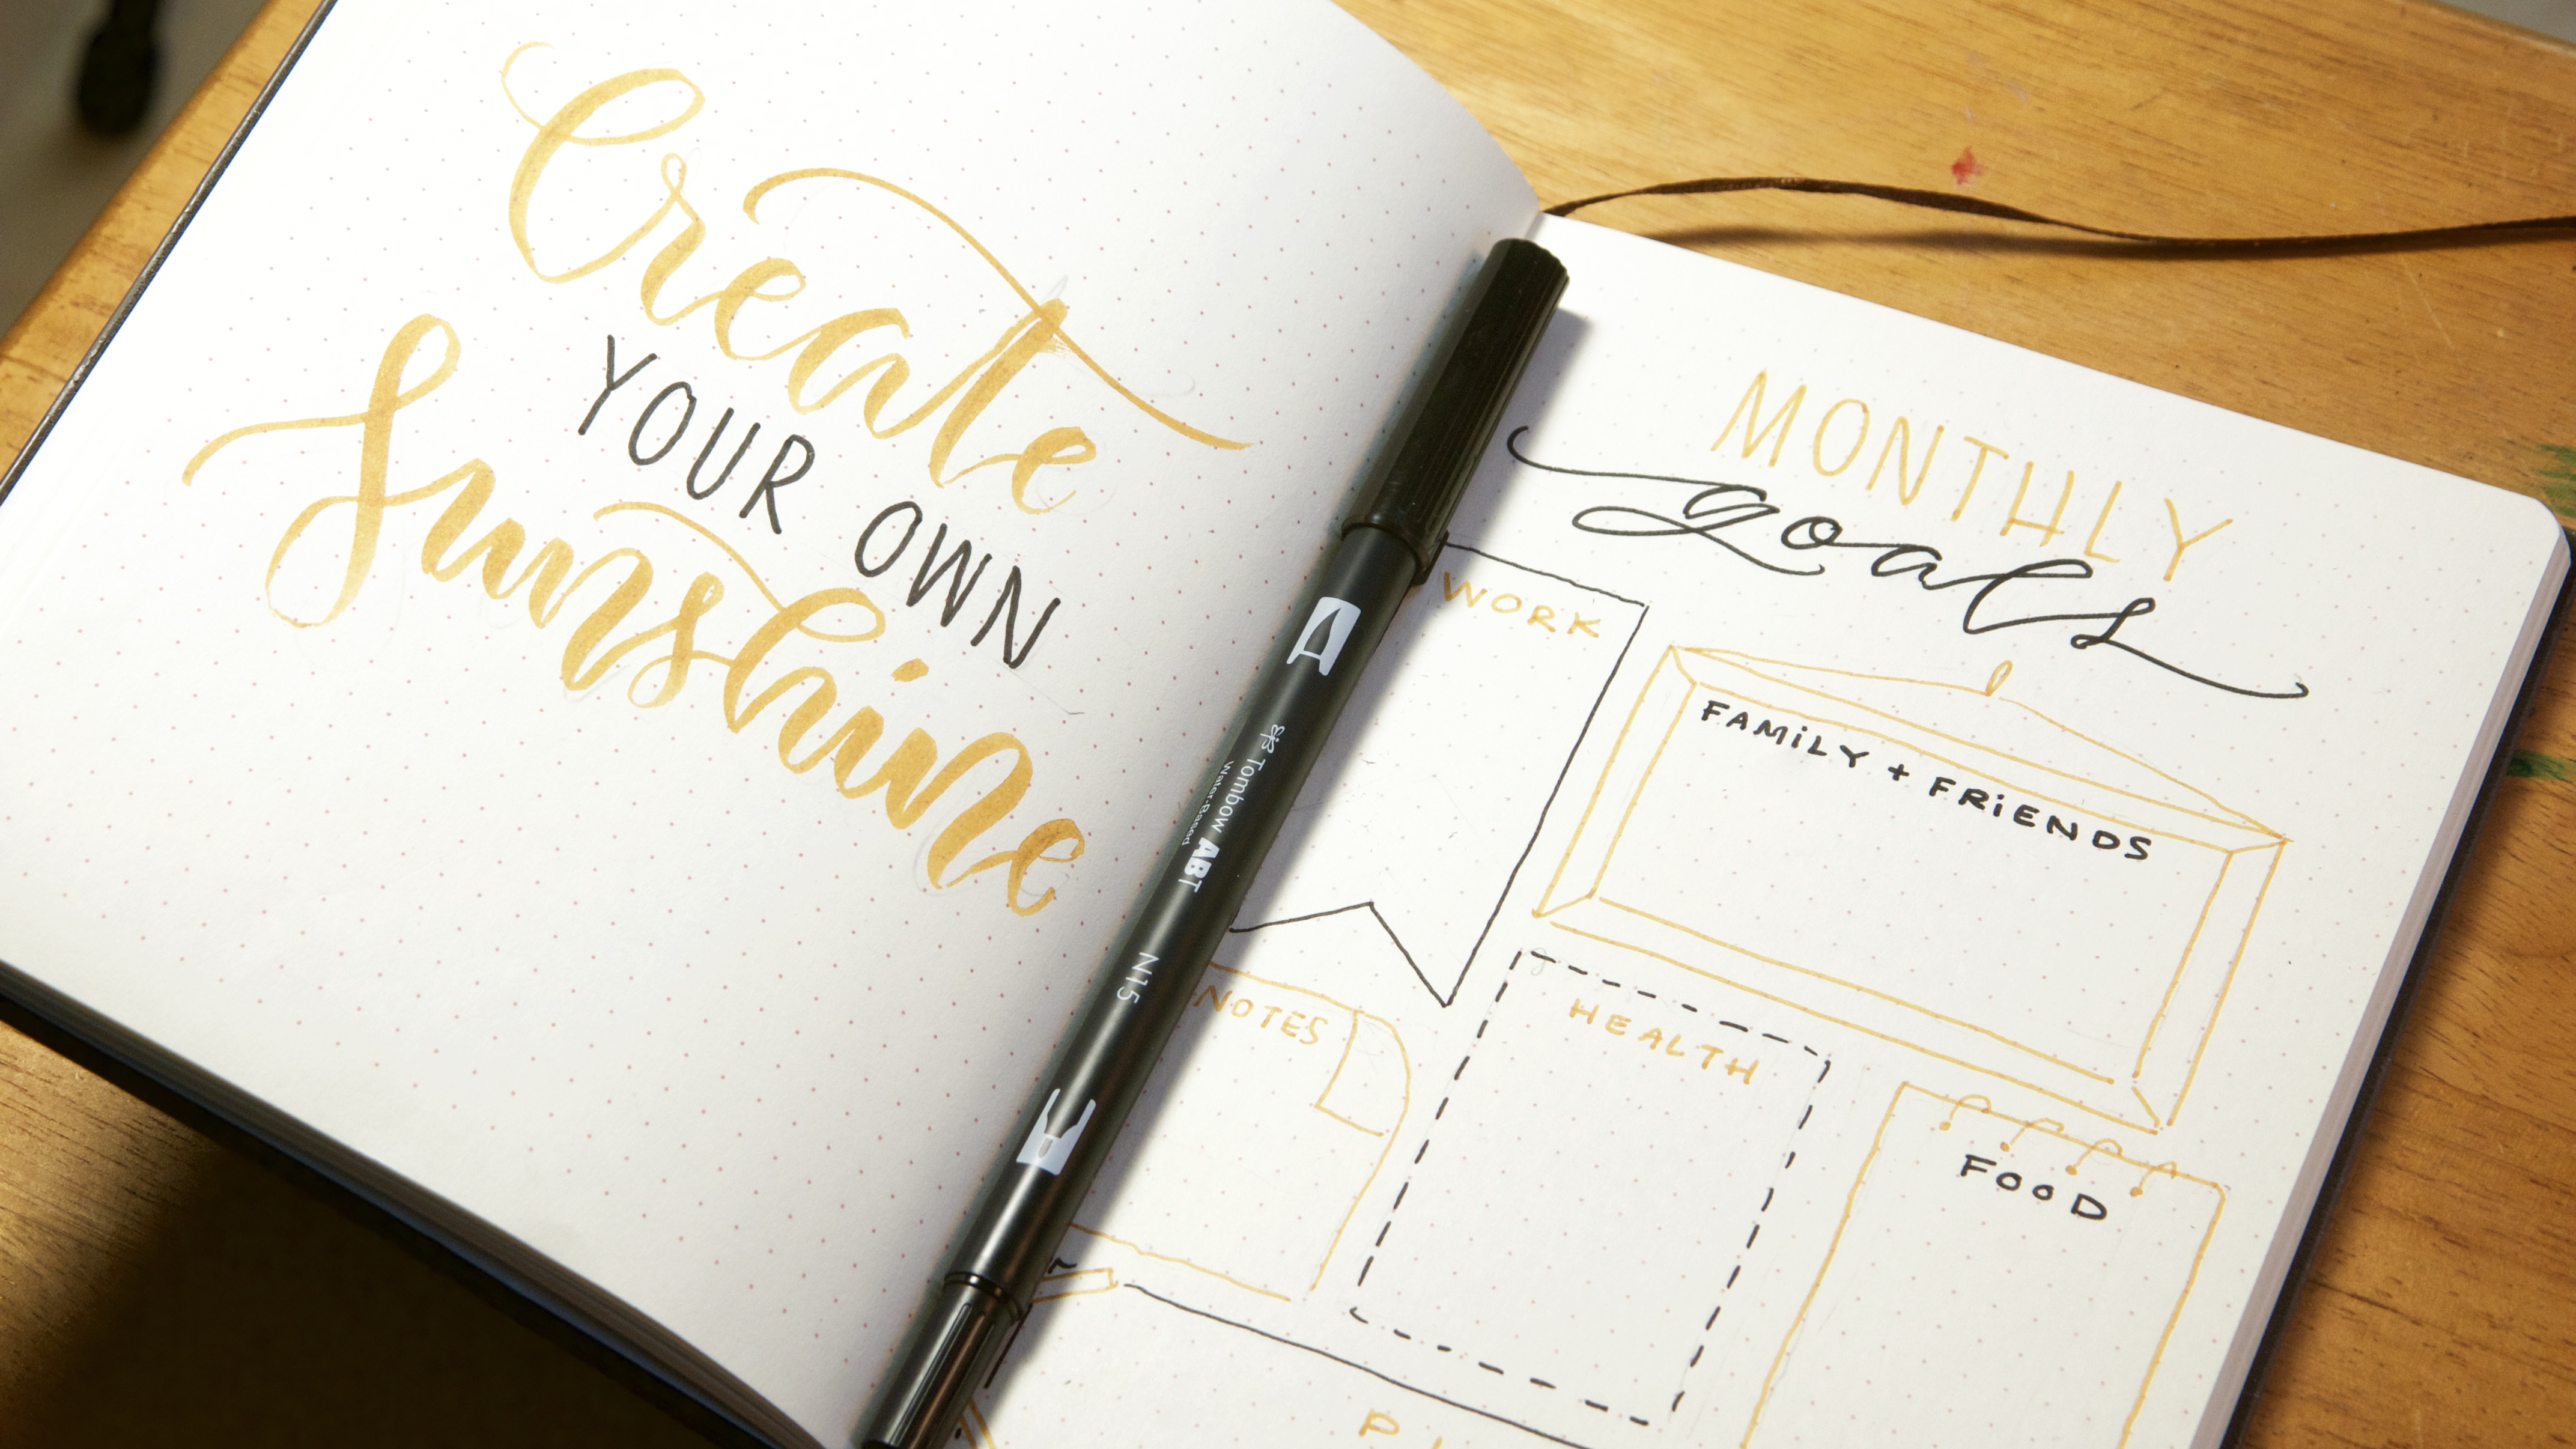 Plan with me - November style!